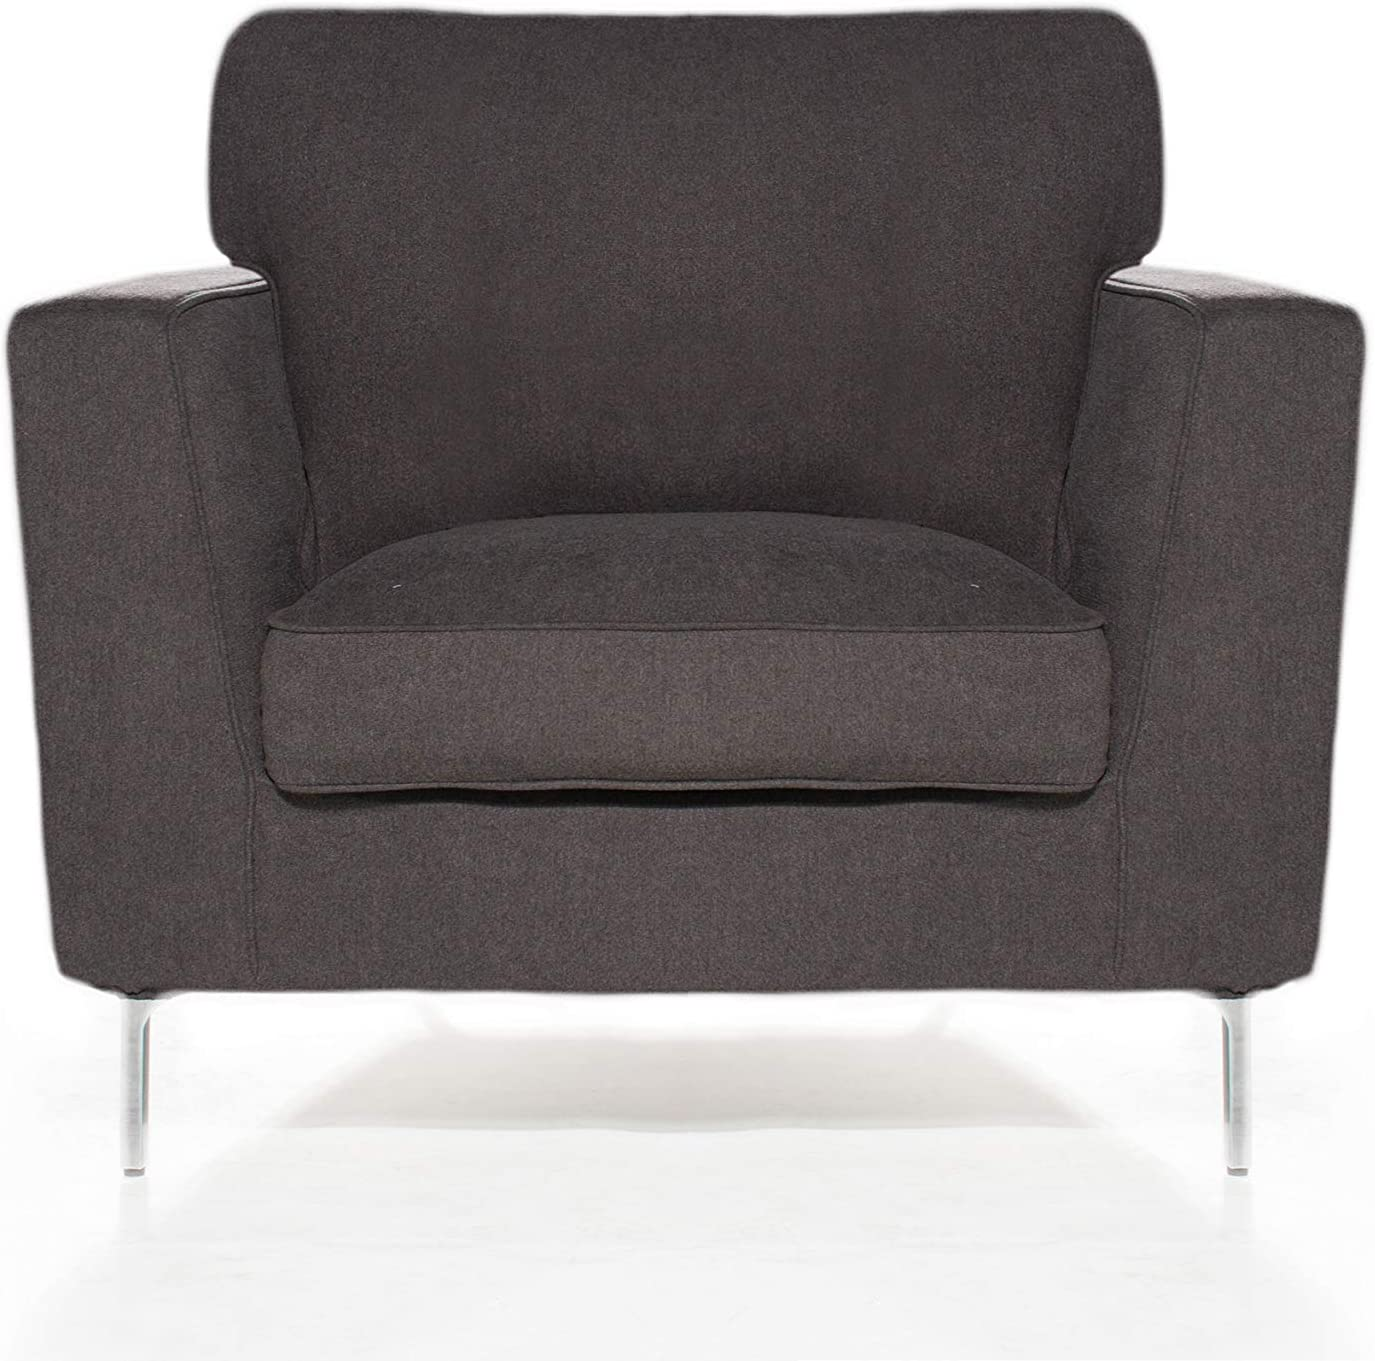 Sofas At the price of surprise 2 Go S2G Blake New Orleans Mall Ash Arm Chair Size One grey